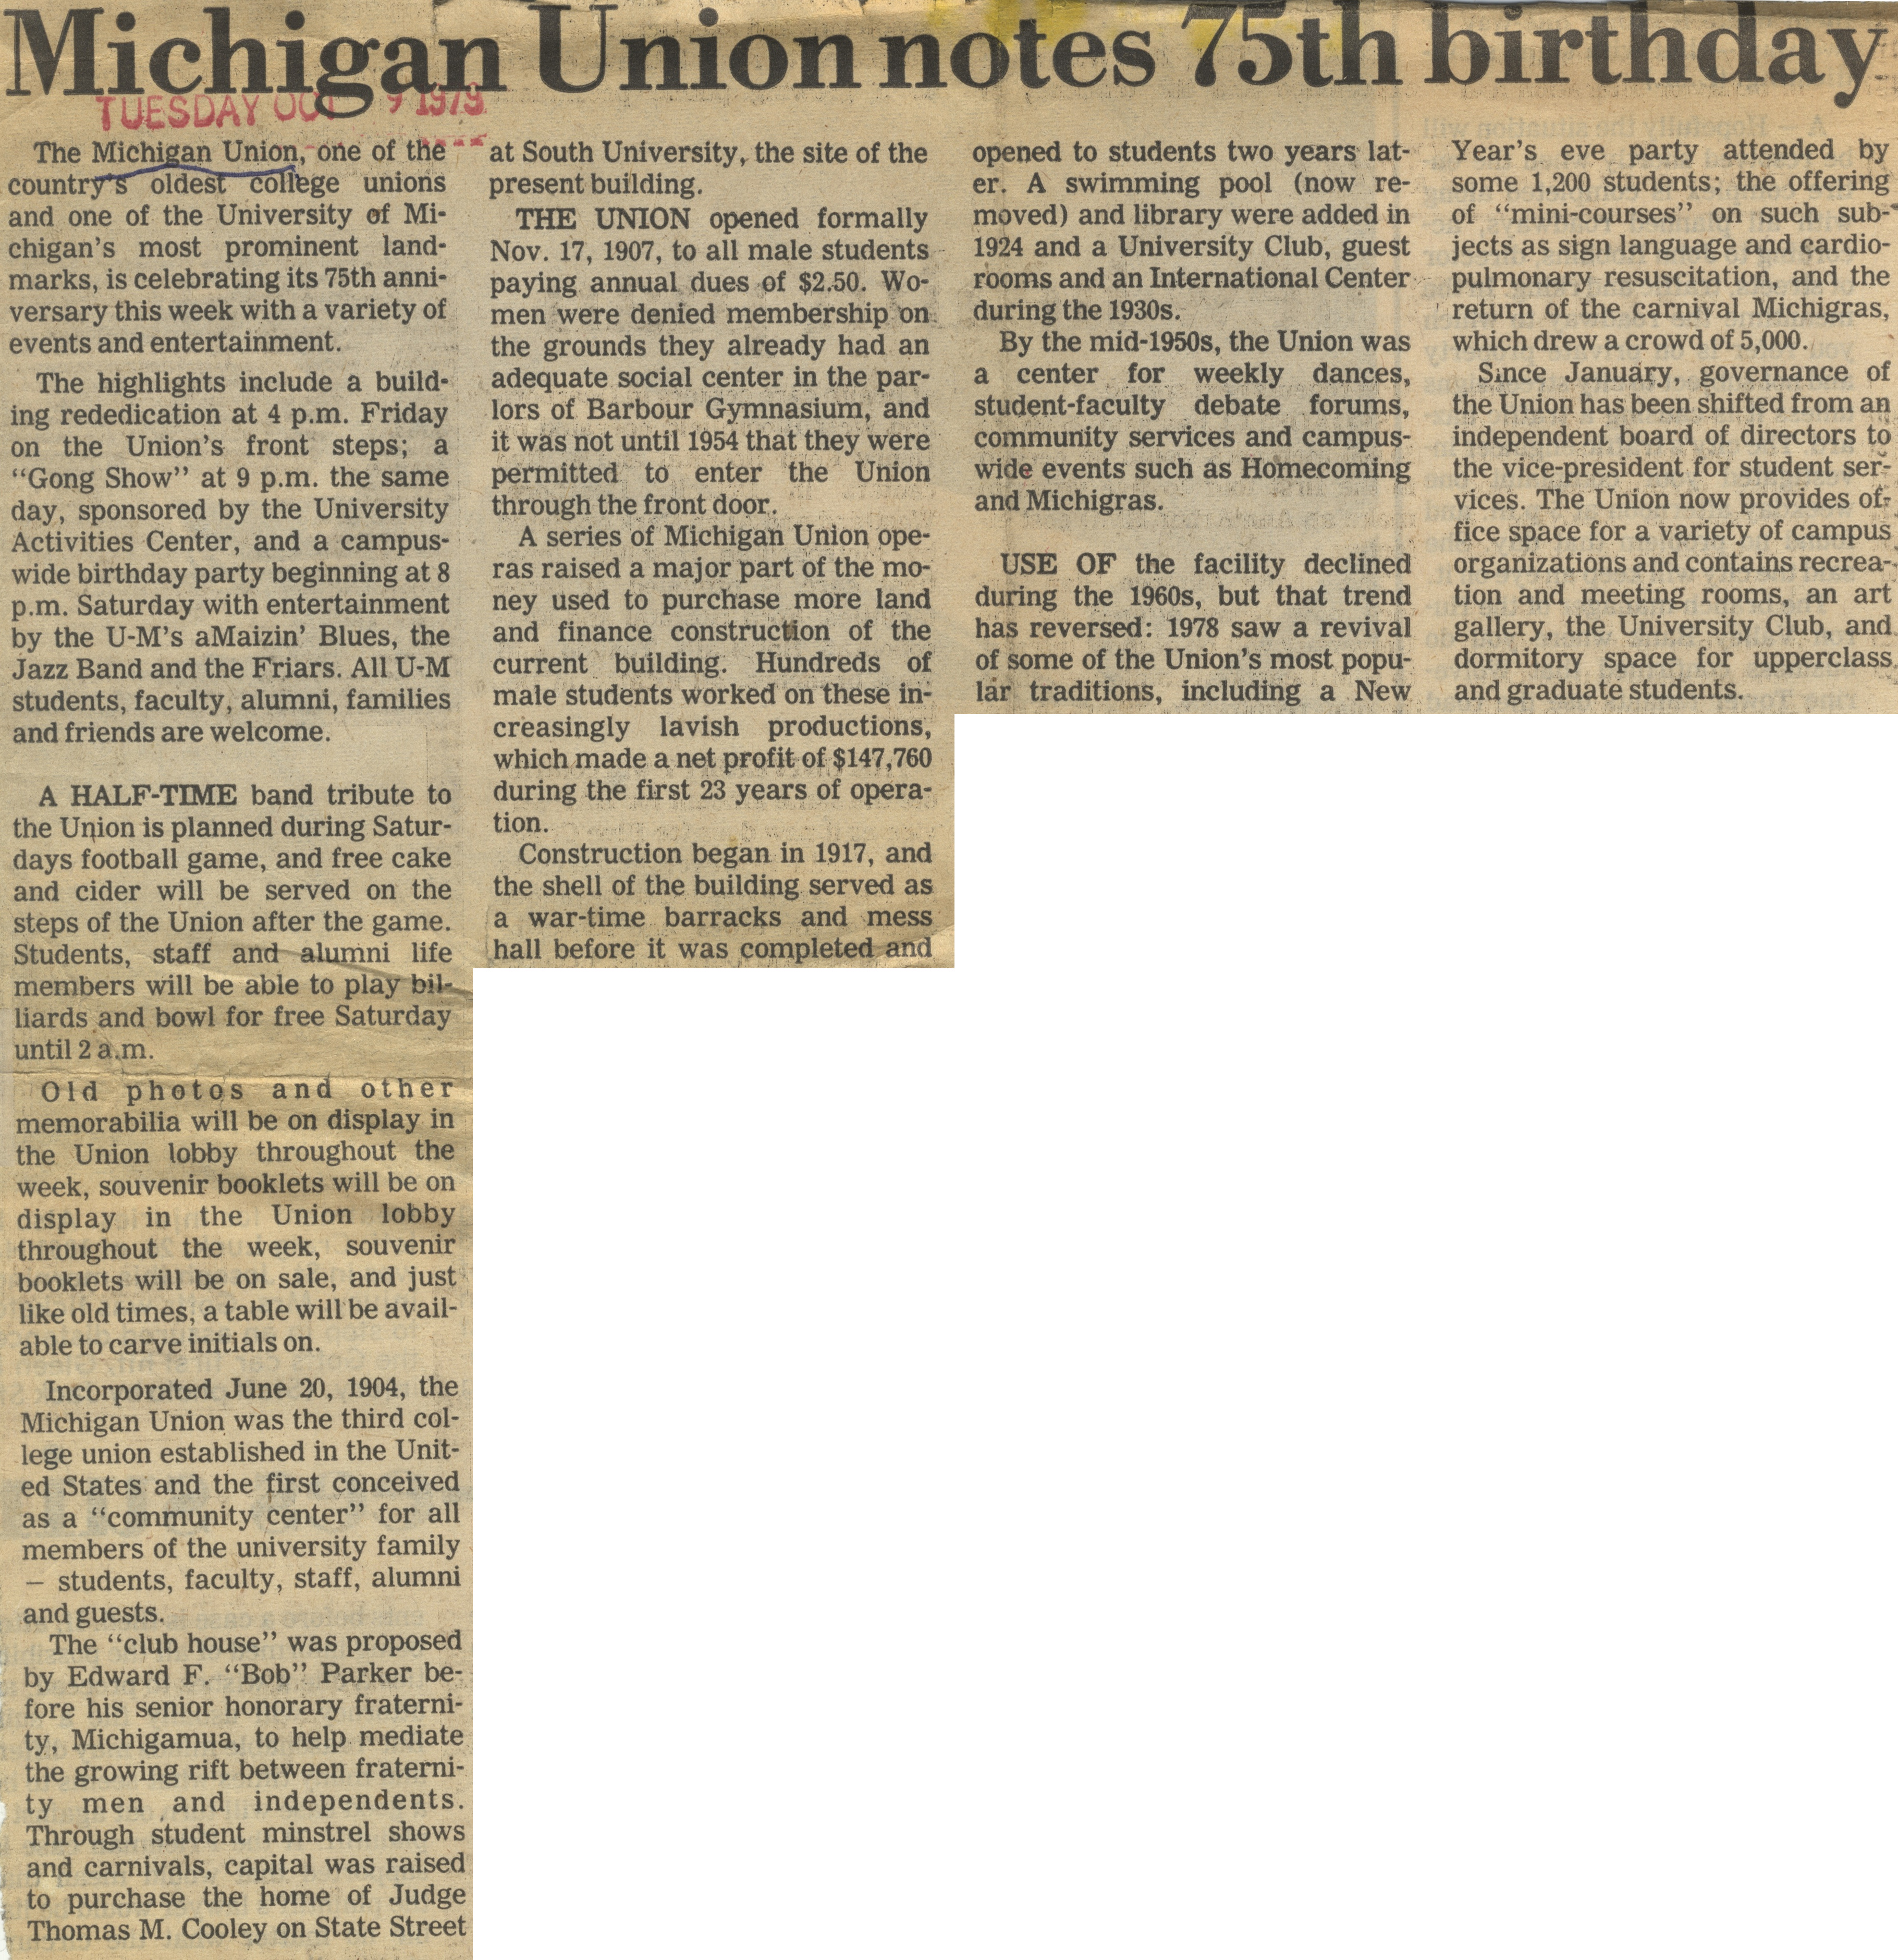 Michigan Union Notes 75th Birthday image